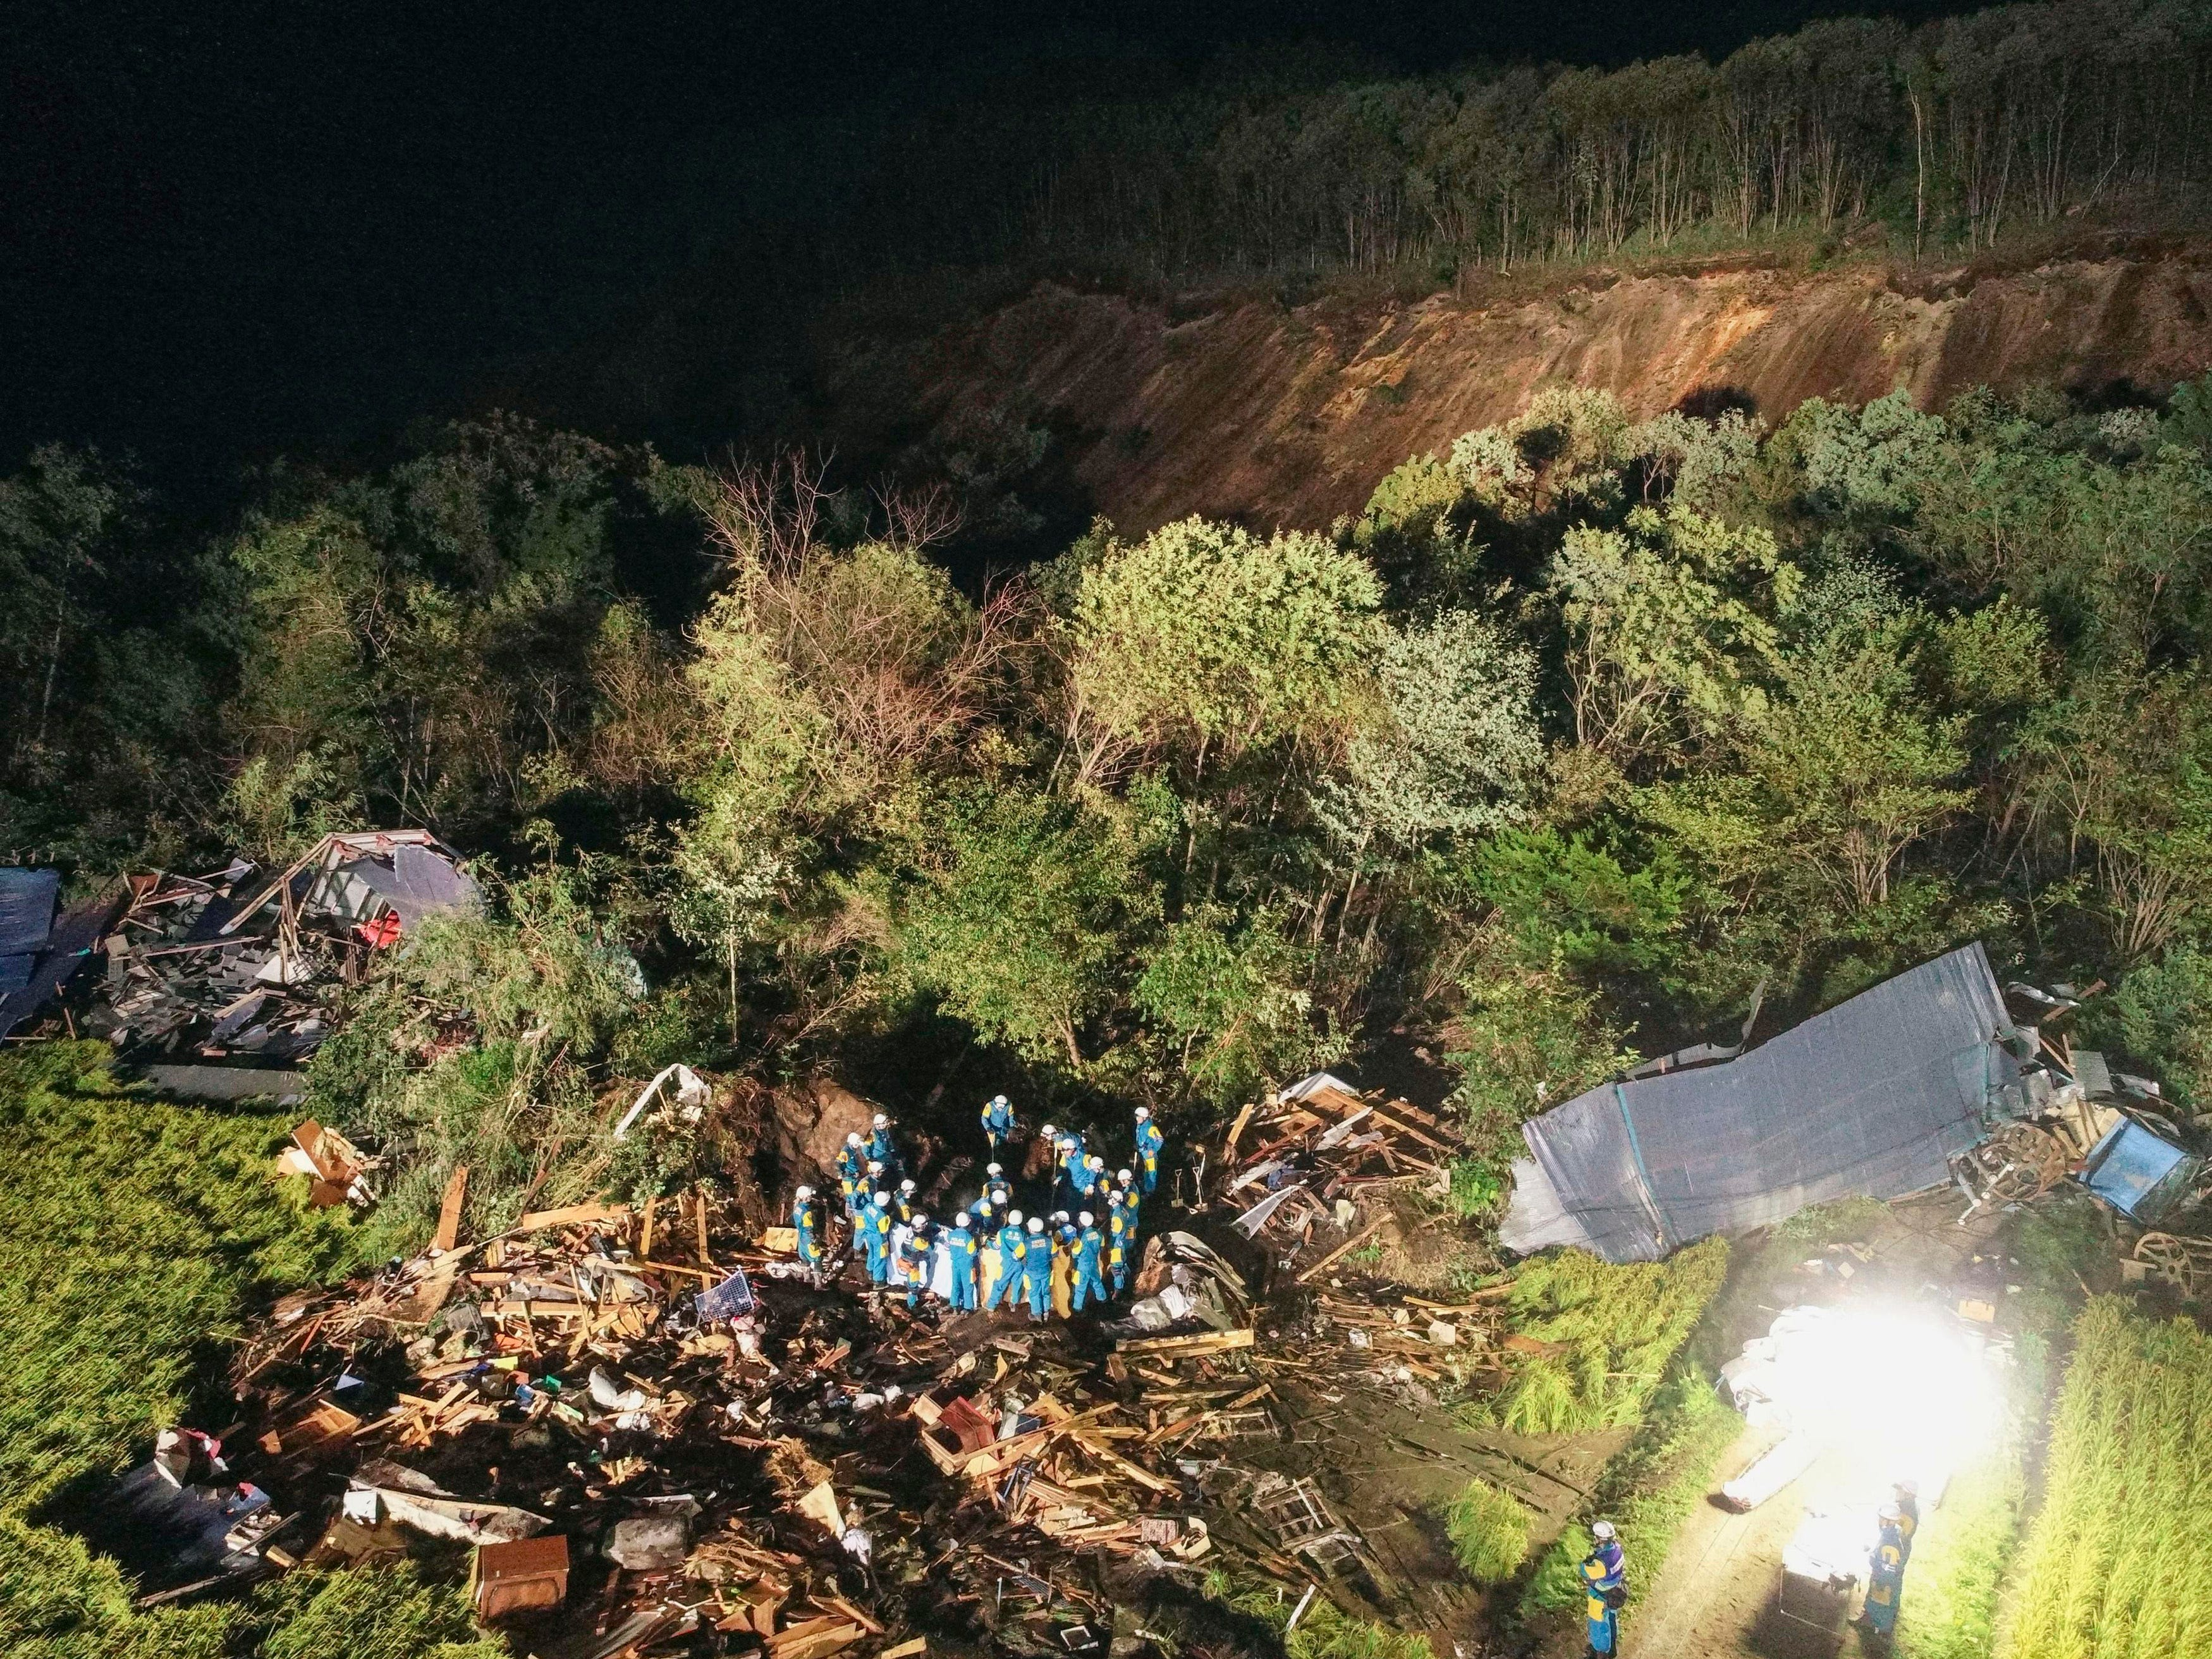 Rescuers work around collapsed buildings due to landslides in Atsuma, Hokkaido, northern Japan Thursday, Sept. 6, 2018.